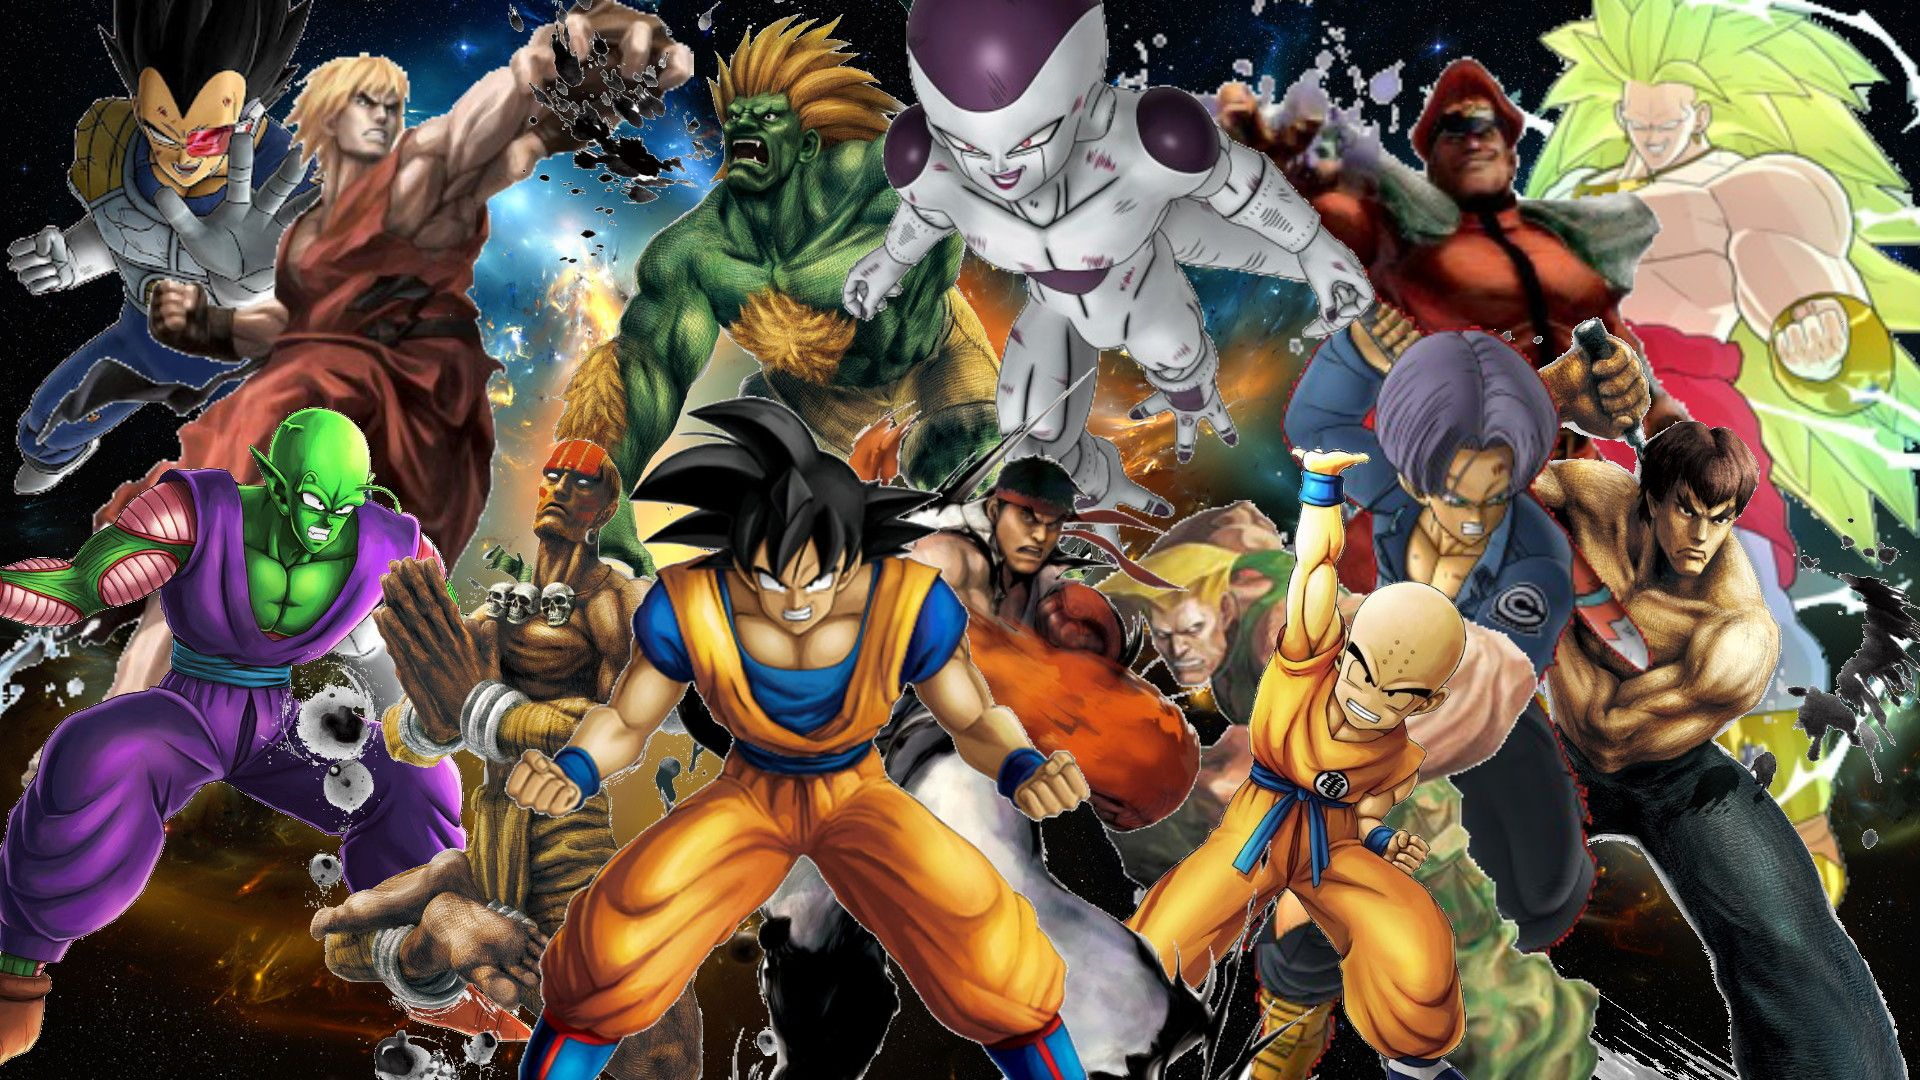 Dragon Ball Z Hd Wallpaper - WallpaperSafari